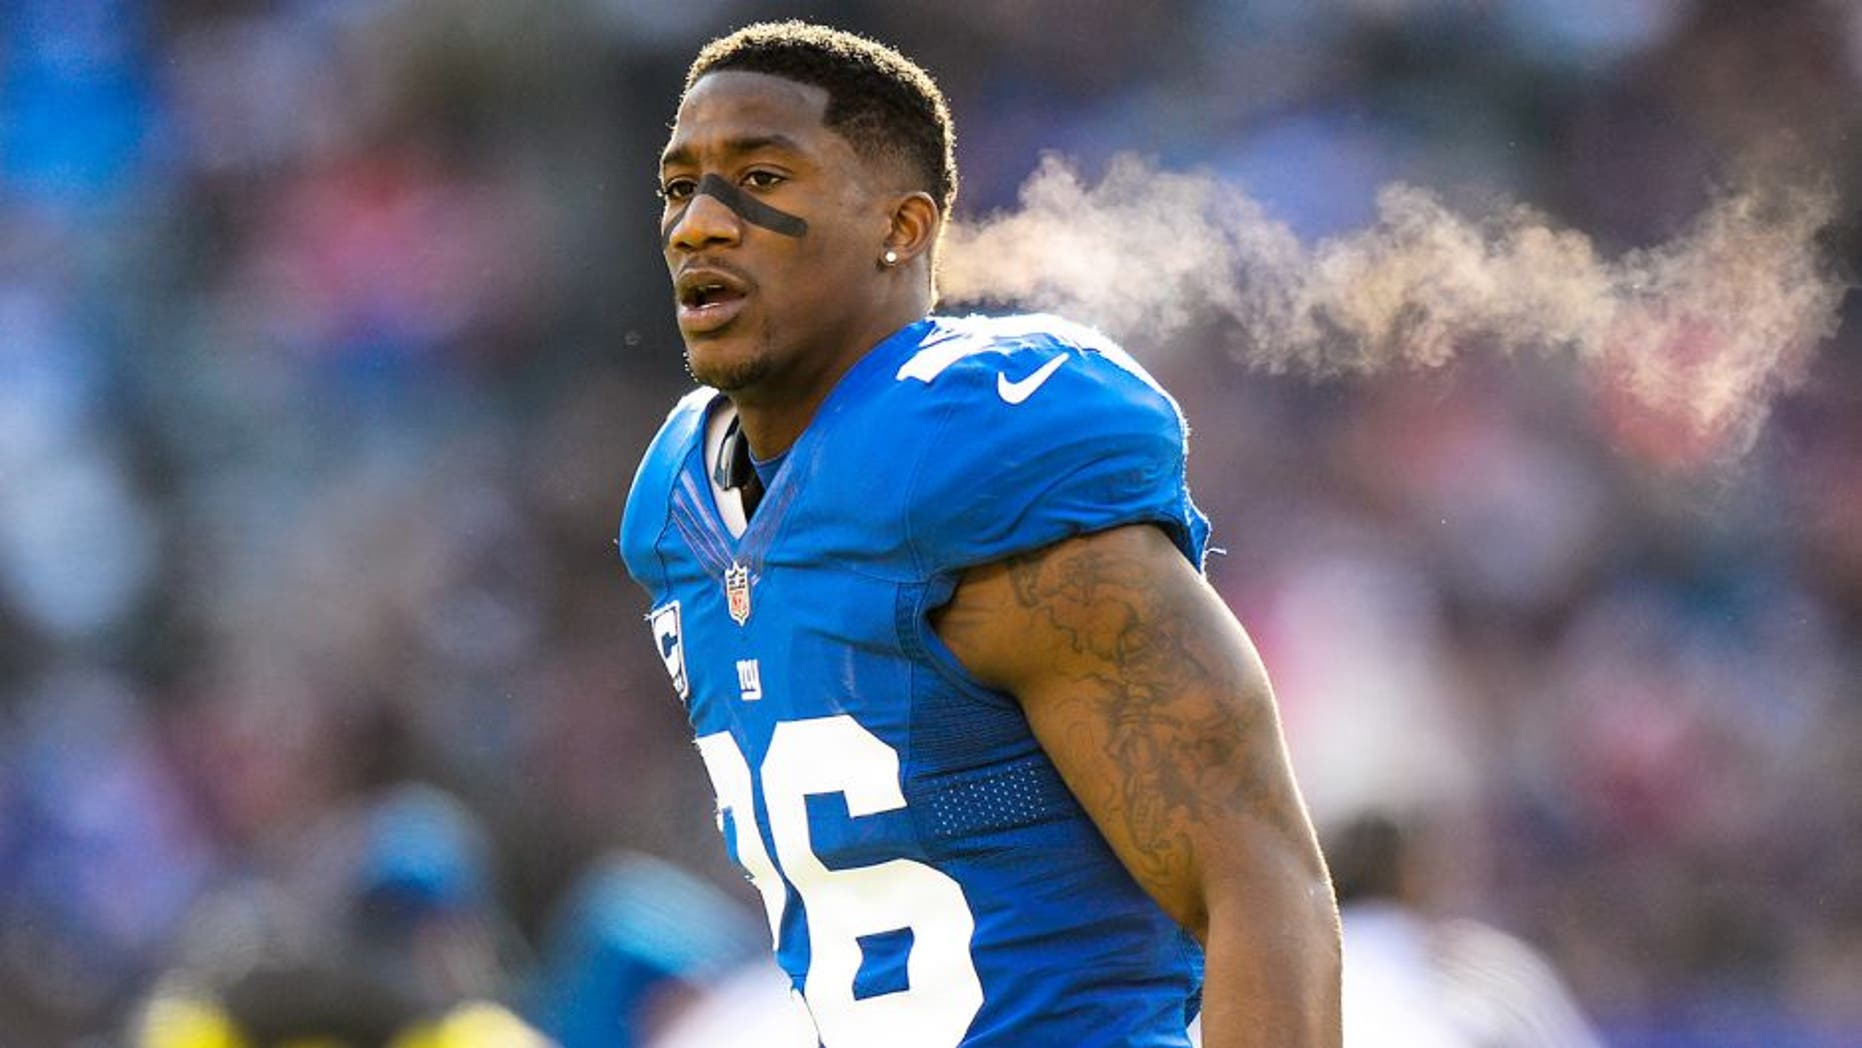 EAST RUTHERFORD, NJ - DECEMBER 15: Strong safety Antrel Rolle #26 during the 1st half of the Seattle Seahawks 23-0 win over the New York Giants at MetLife Stadium on December 15, 2013 in East Rutherford, New Jersey. (Photo by Ron Antonelli/Getty Images)